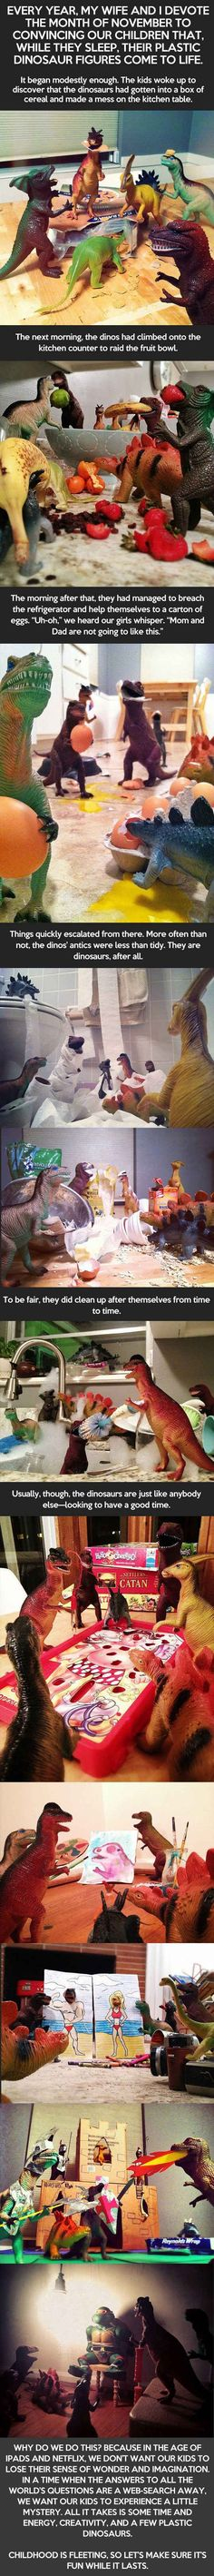 The parents who make dinosaurs come to life every November.